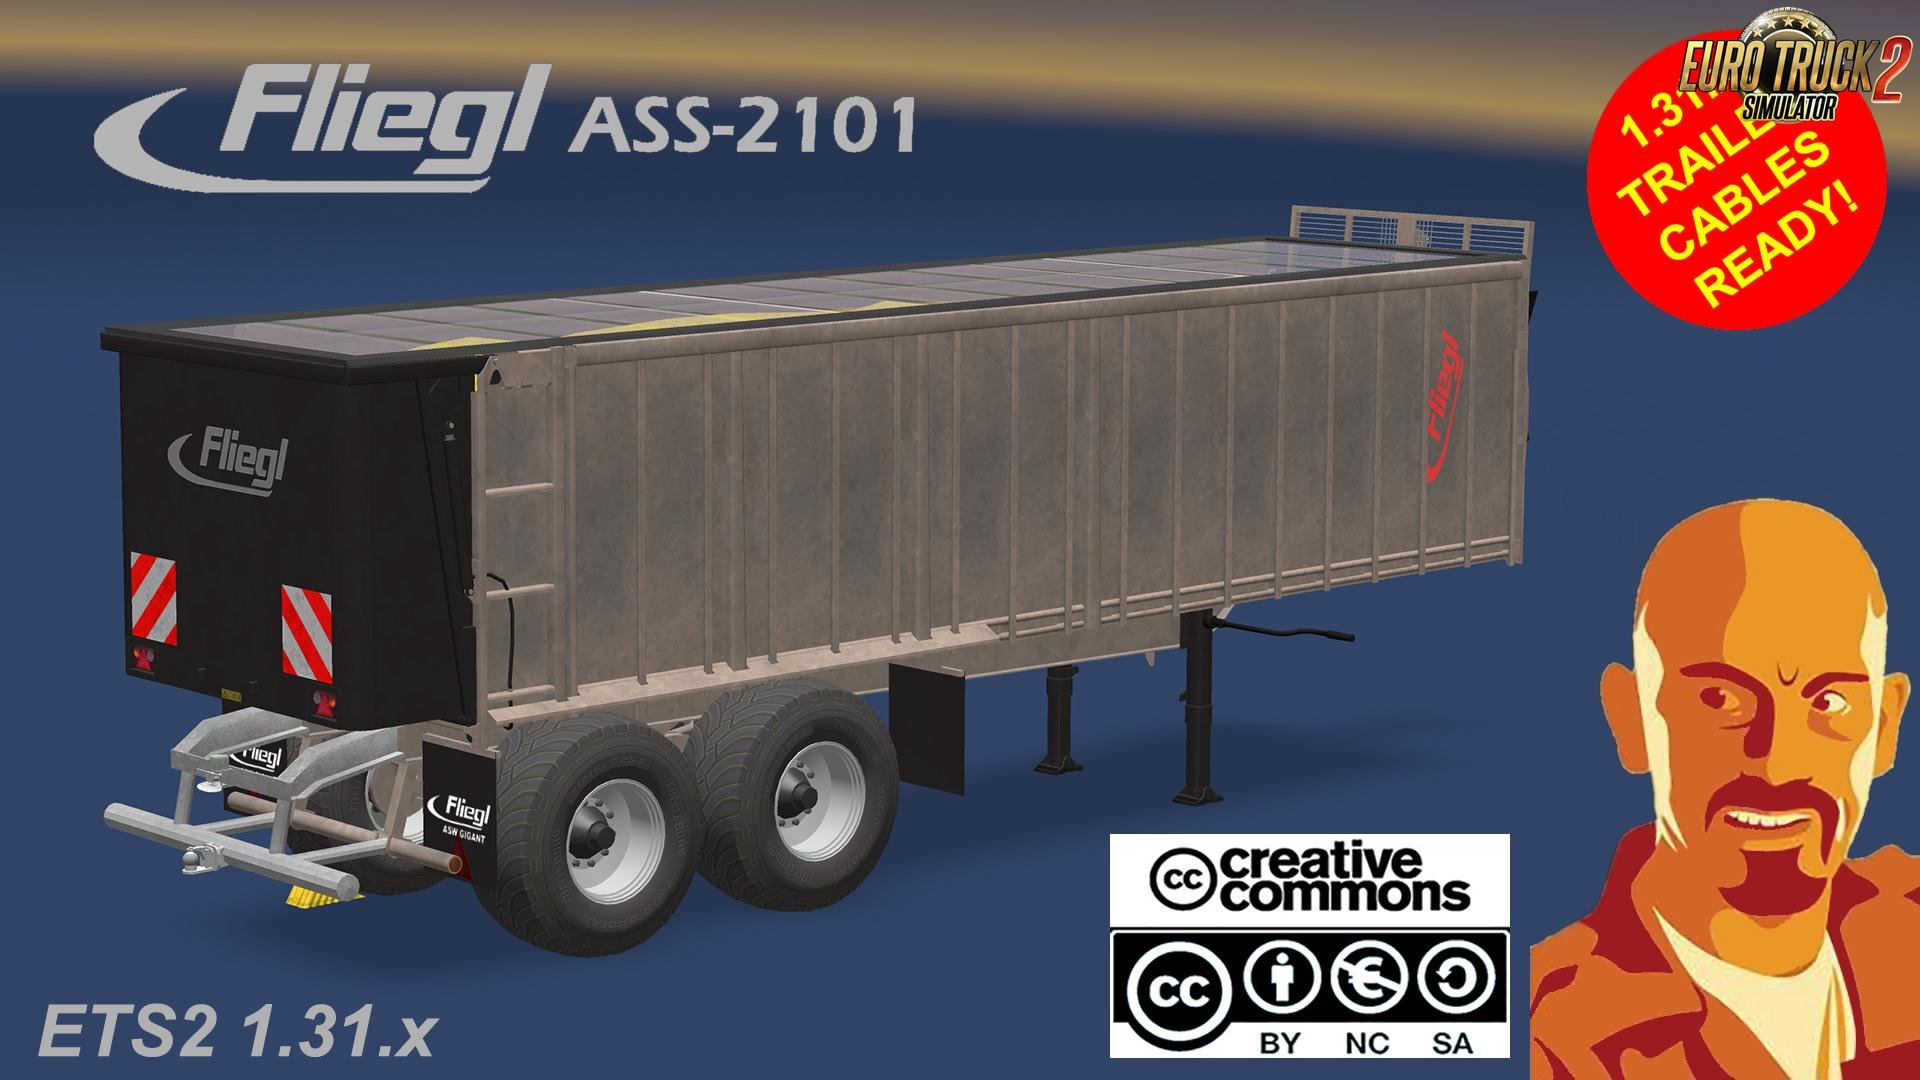 FLIEGL ASS 2101 Agrar Trailer for Ets2